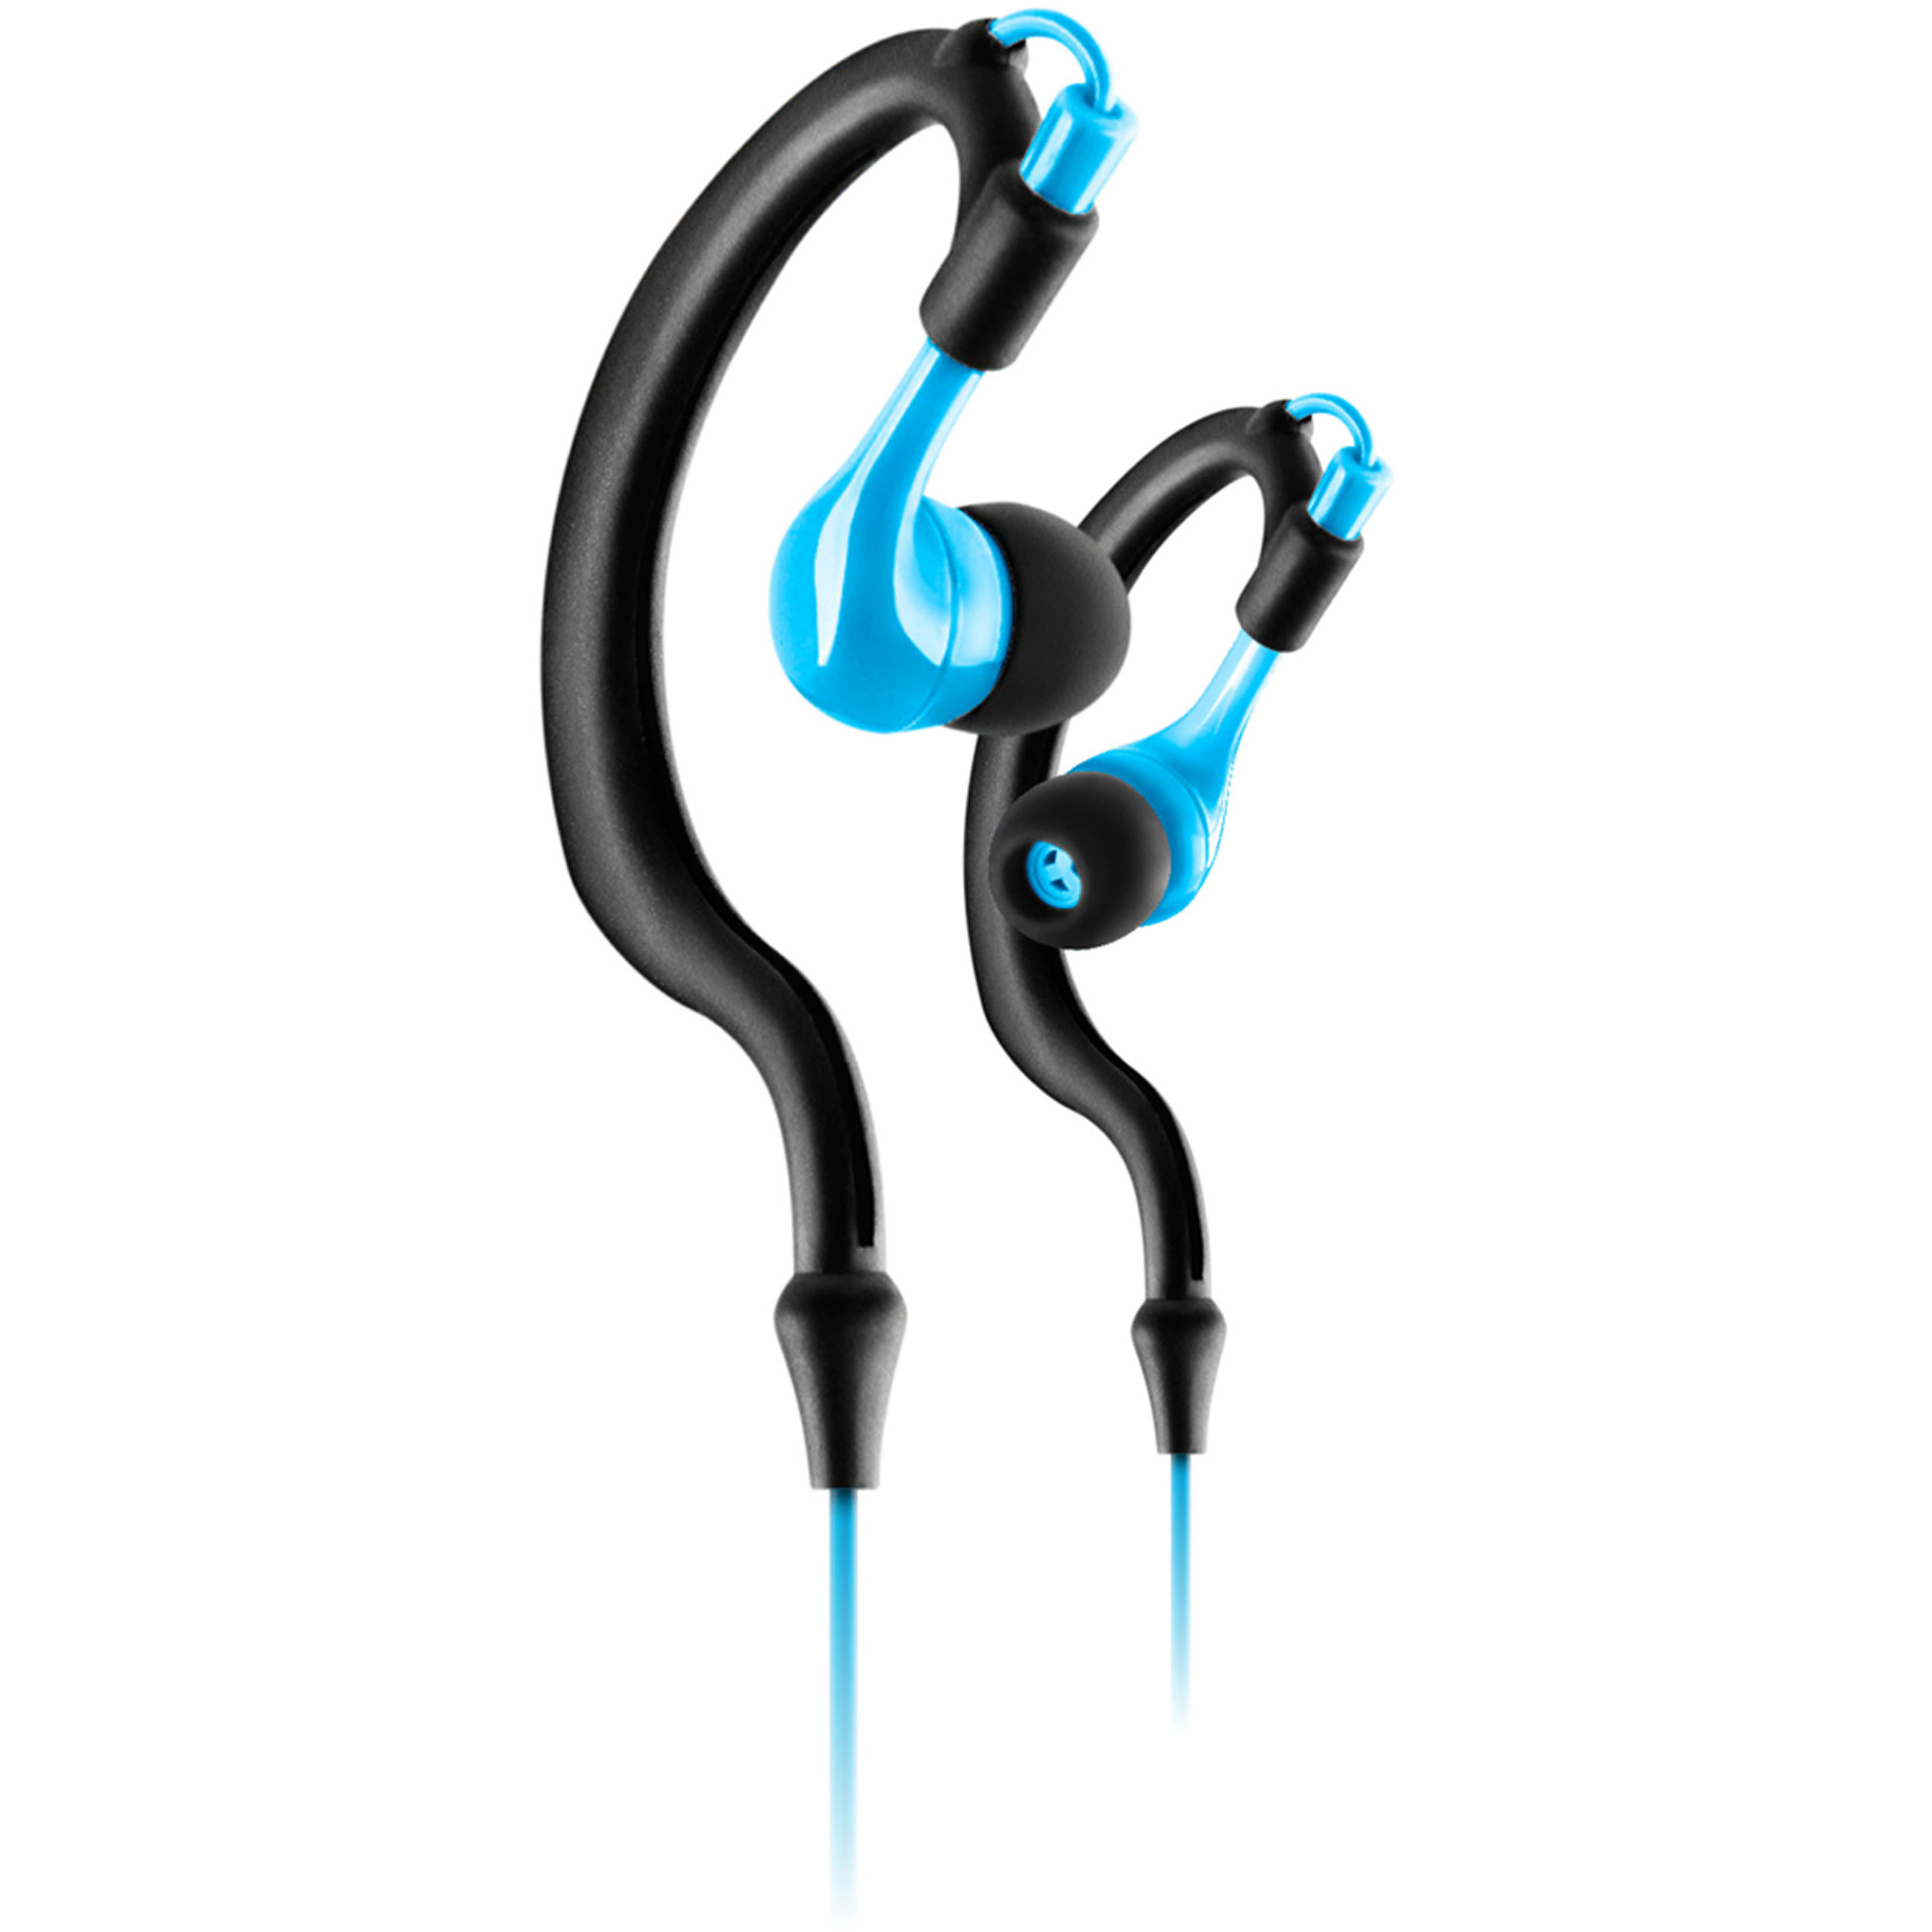 GOgroove AudiOHM H2O Sports Headphones with iPX 8 Certified Waterproof Rating and Flexible Earhooks